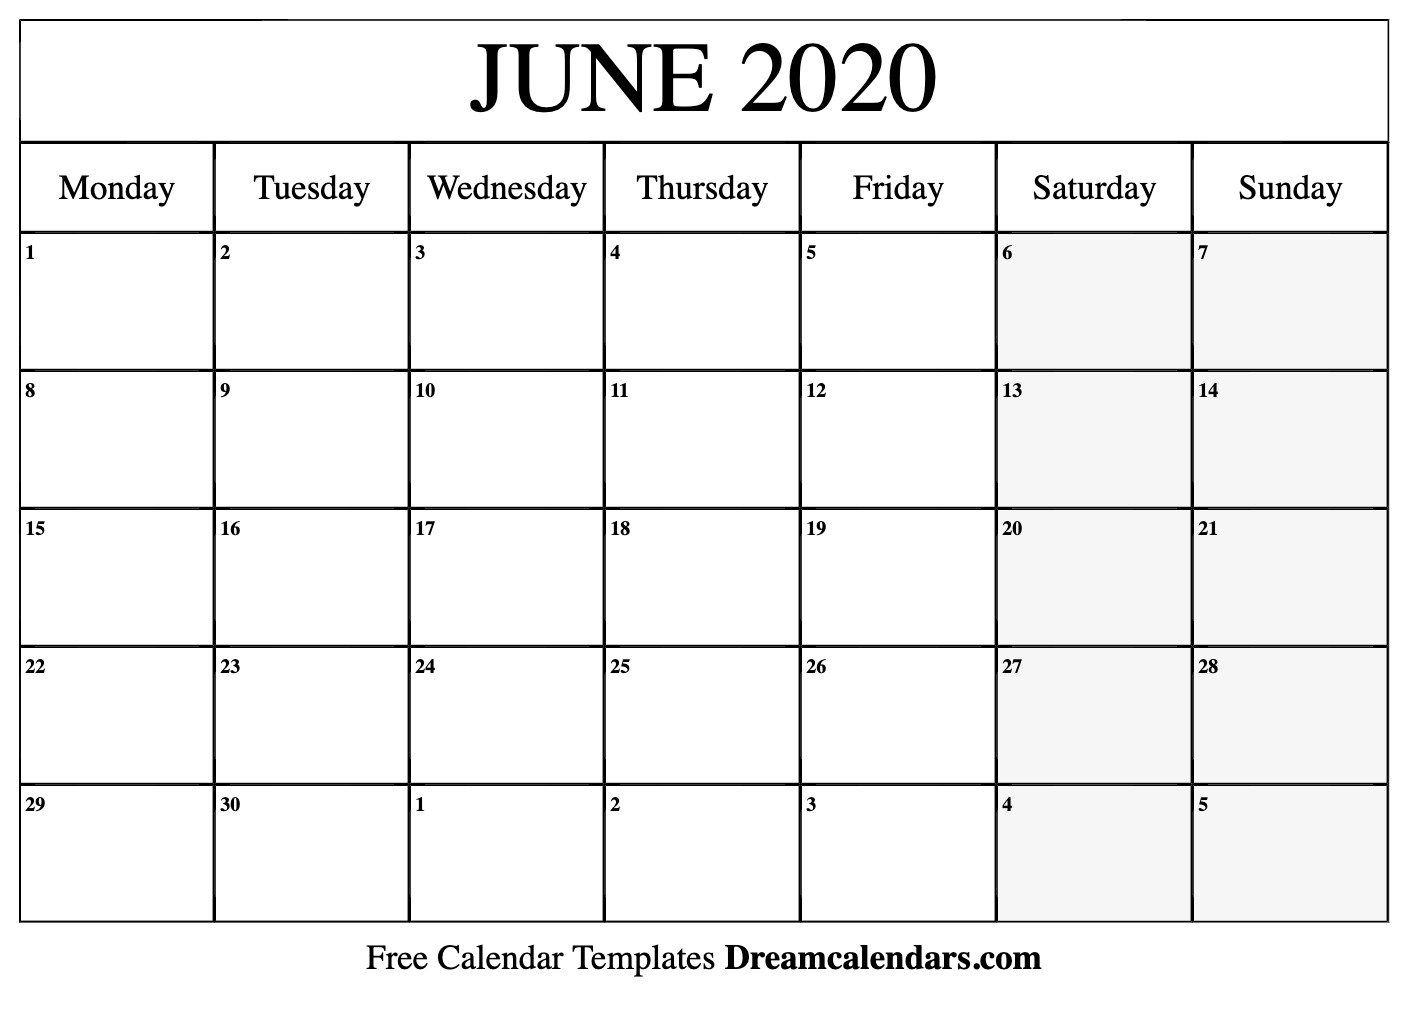 Calendar For June 2020 Printable June 2020 Calendar